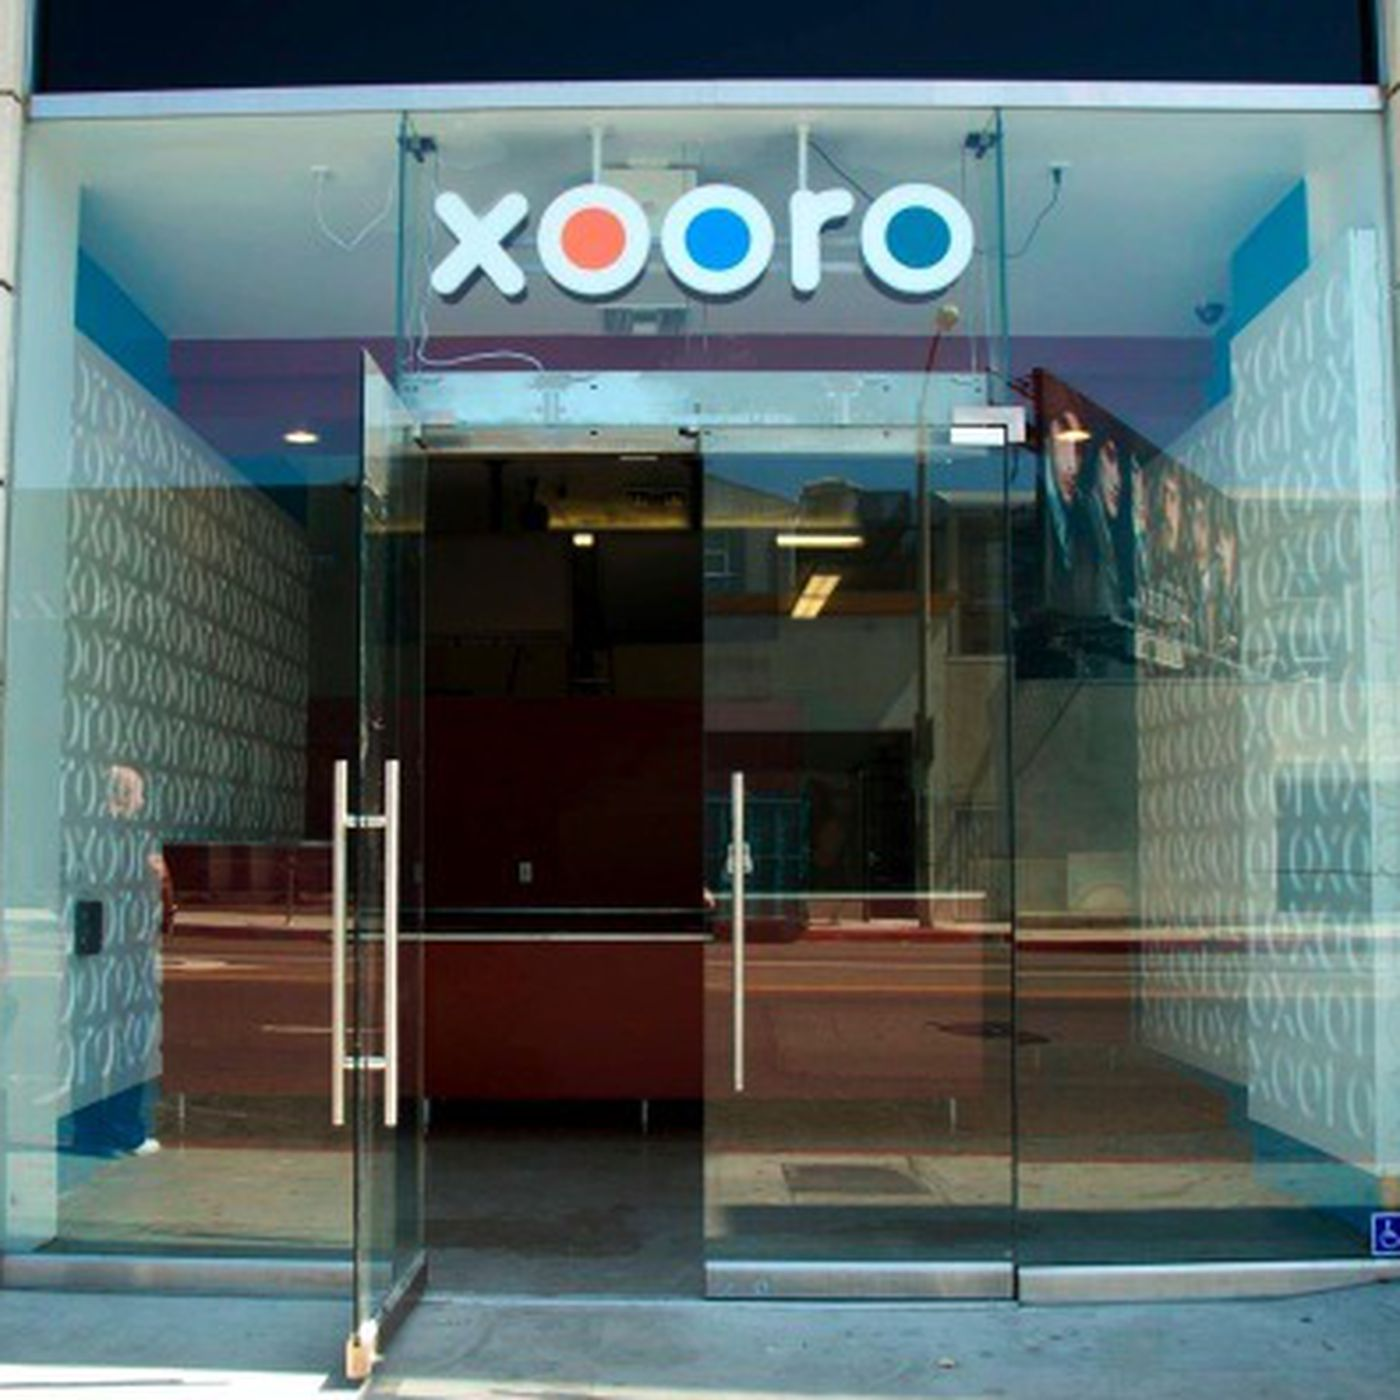 Eater Tracking Xooro Opening The Hideout Bistro Lq Elements Kitchen Plus More Eater La